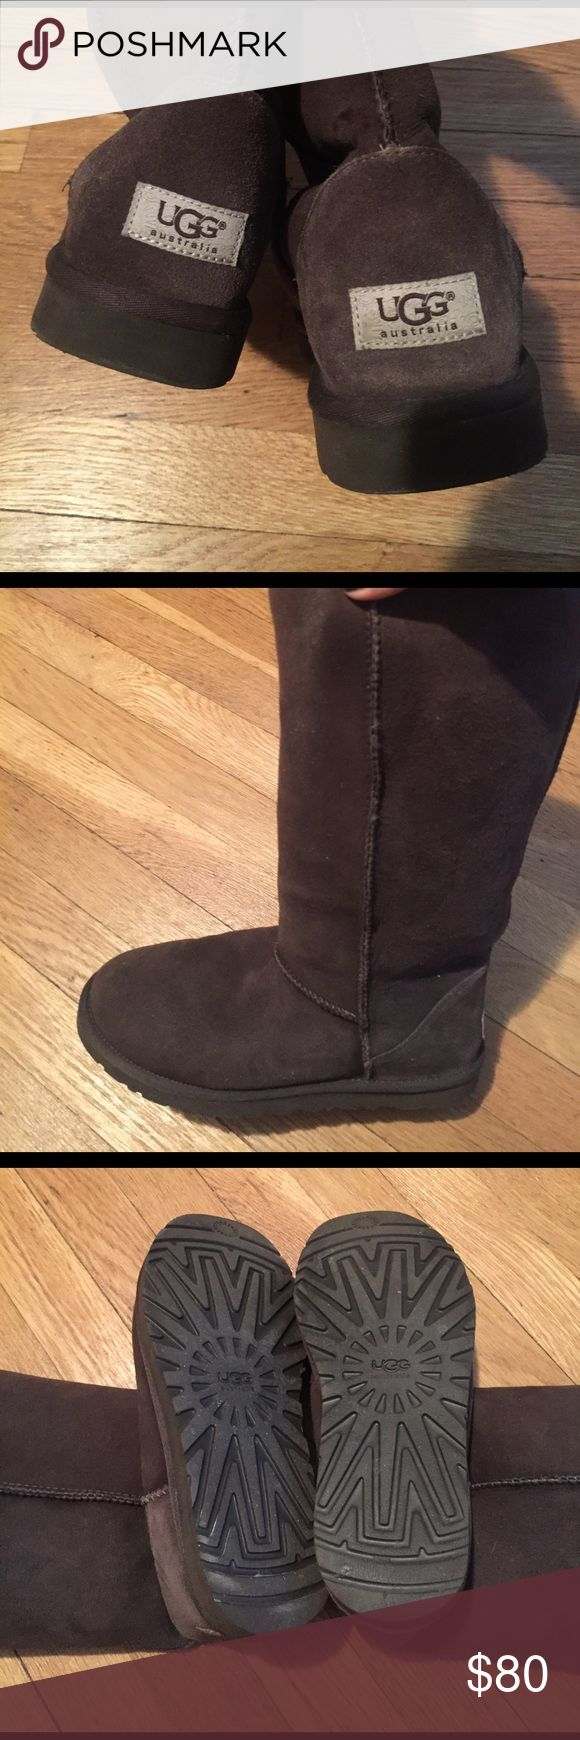 Chocolate Brown Tall Ugg Boots In great condition! Chocolate brown, tall UGG boots UGG Shoes Winter & Rain Boots